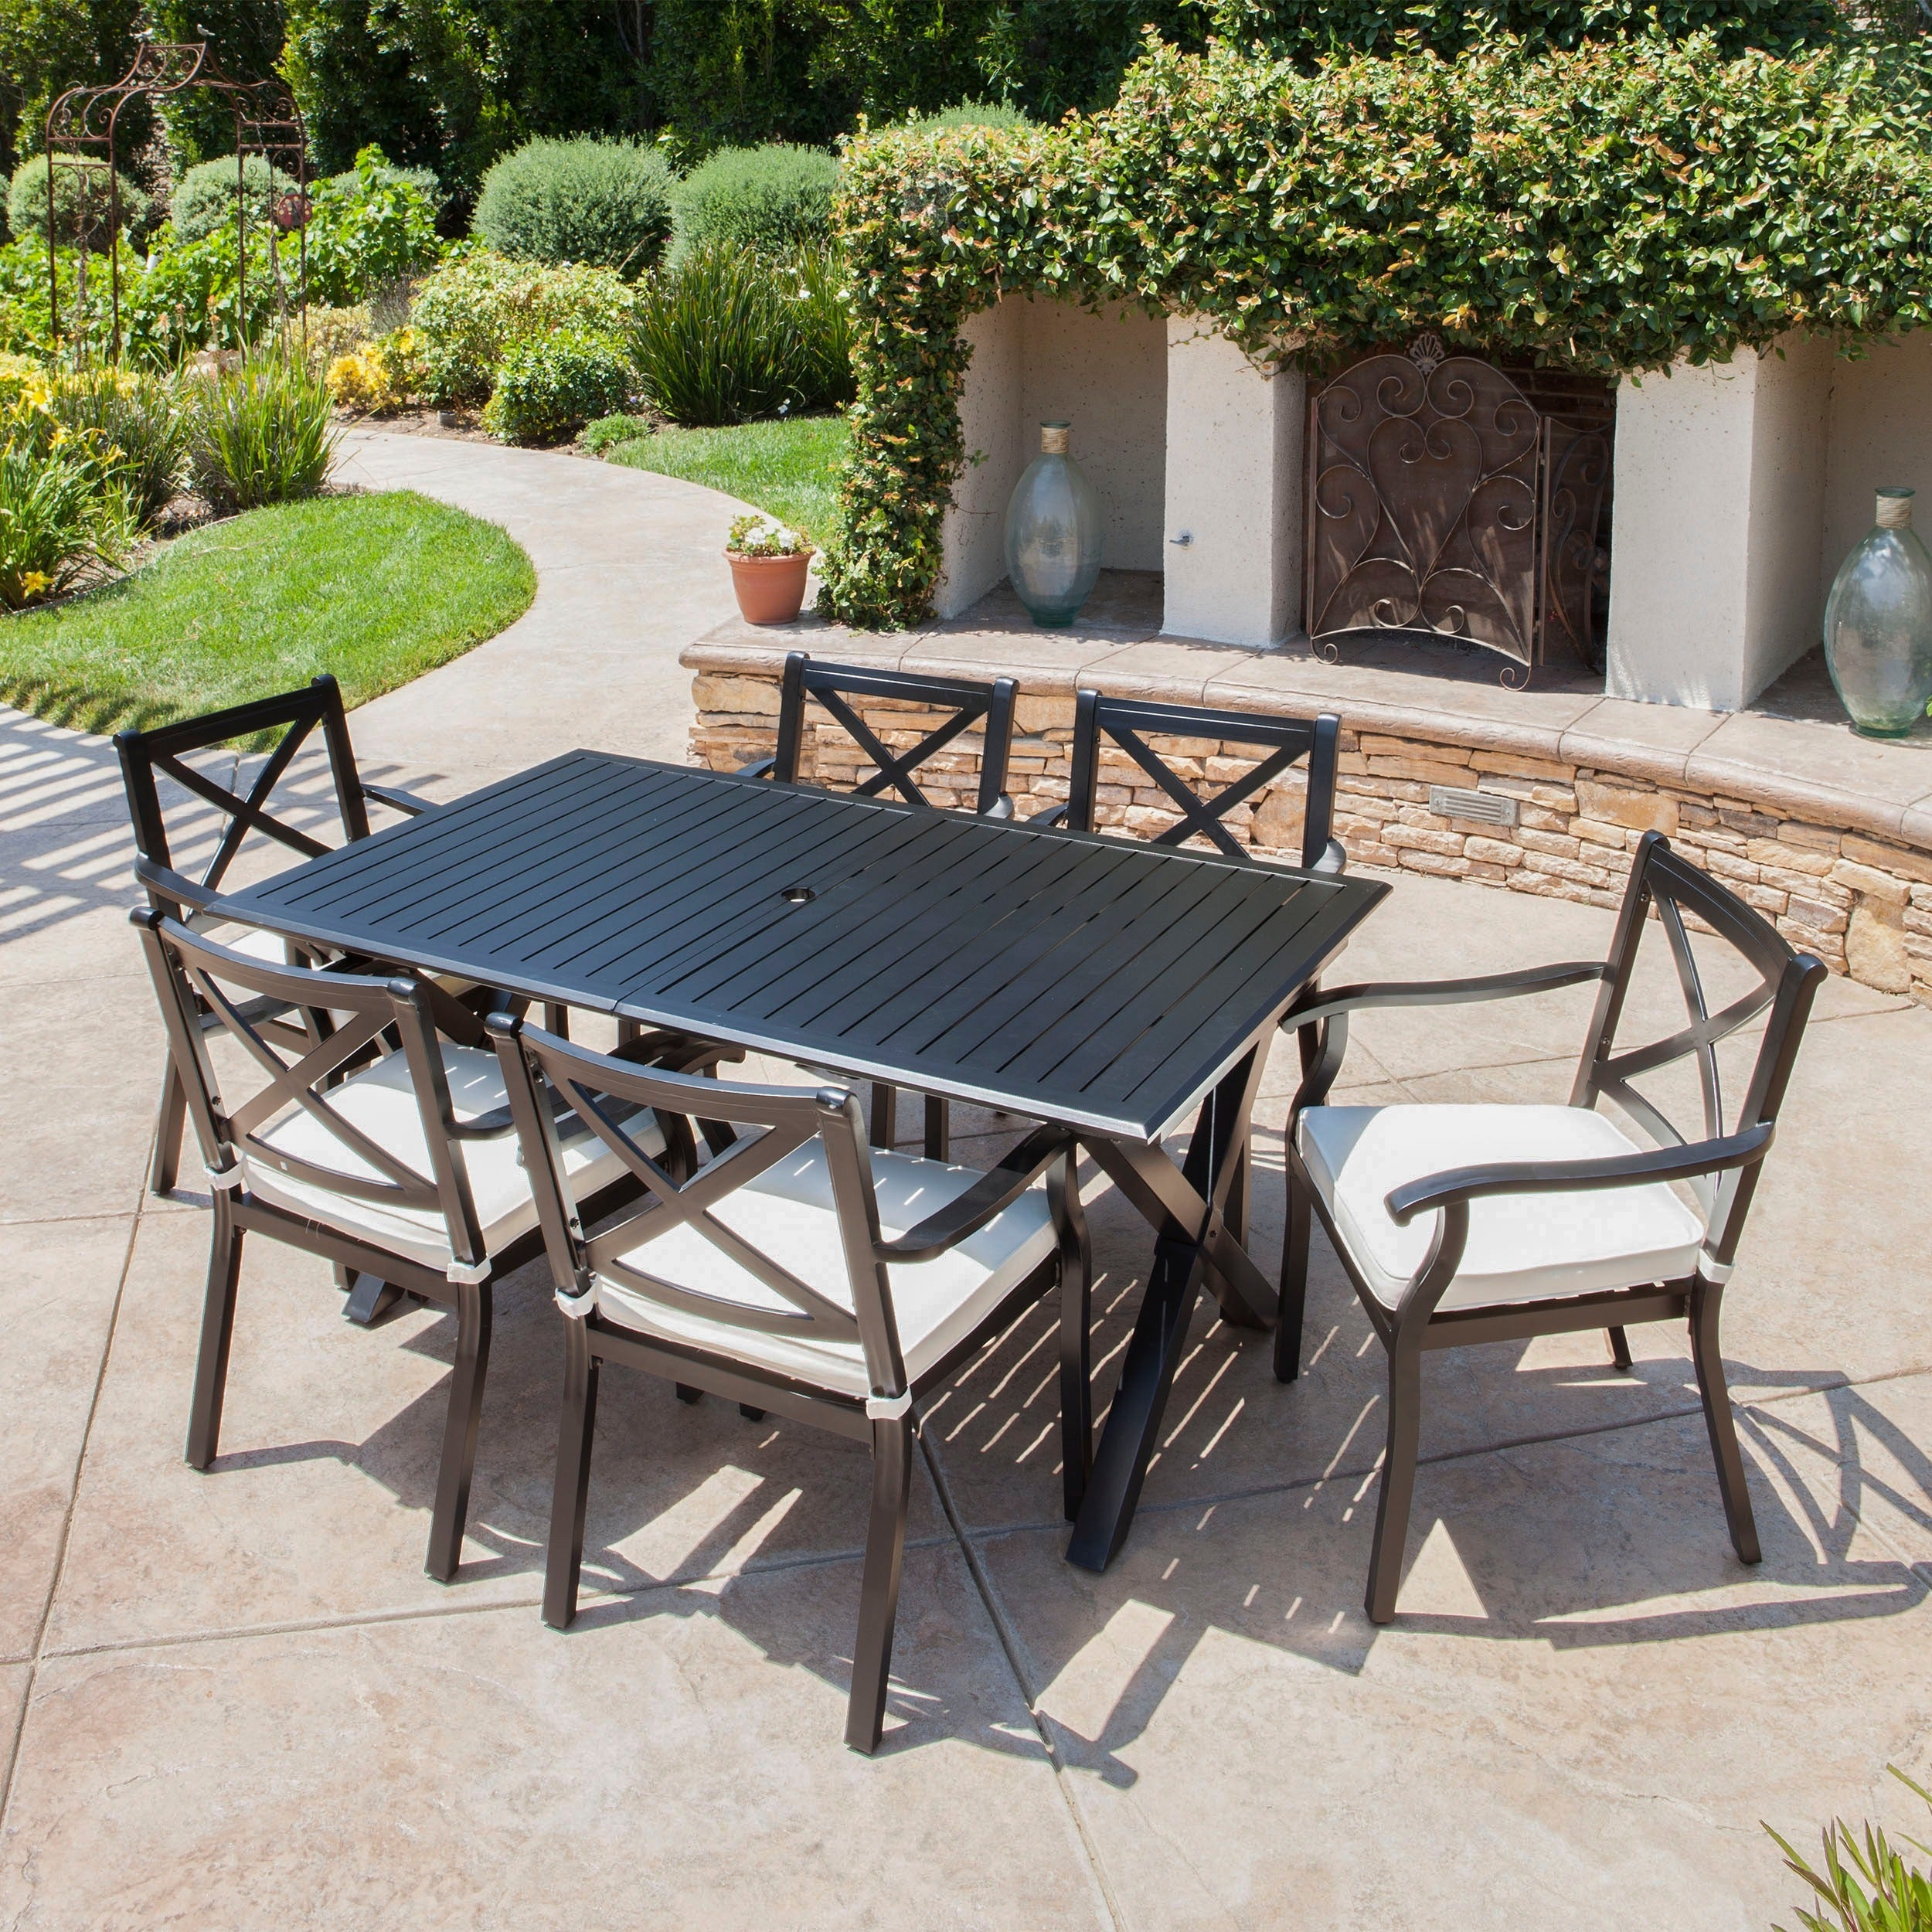 Exuma Outdoor Black Cast Aluminum Dining Set With Ivory Water Resistant Cushions By Christopher Knight Home Overstock 16413138